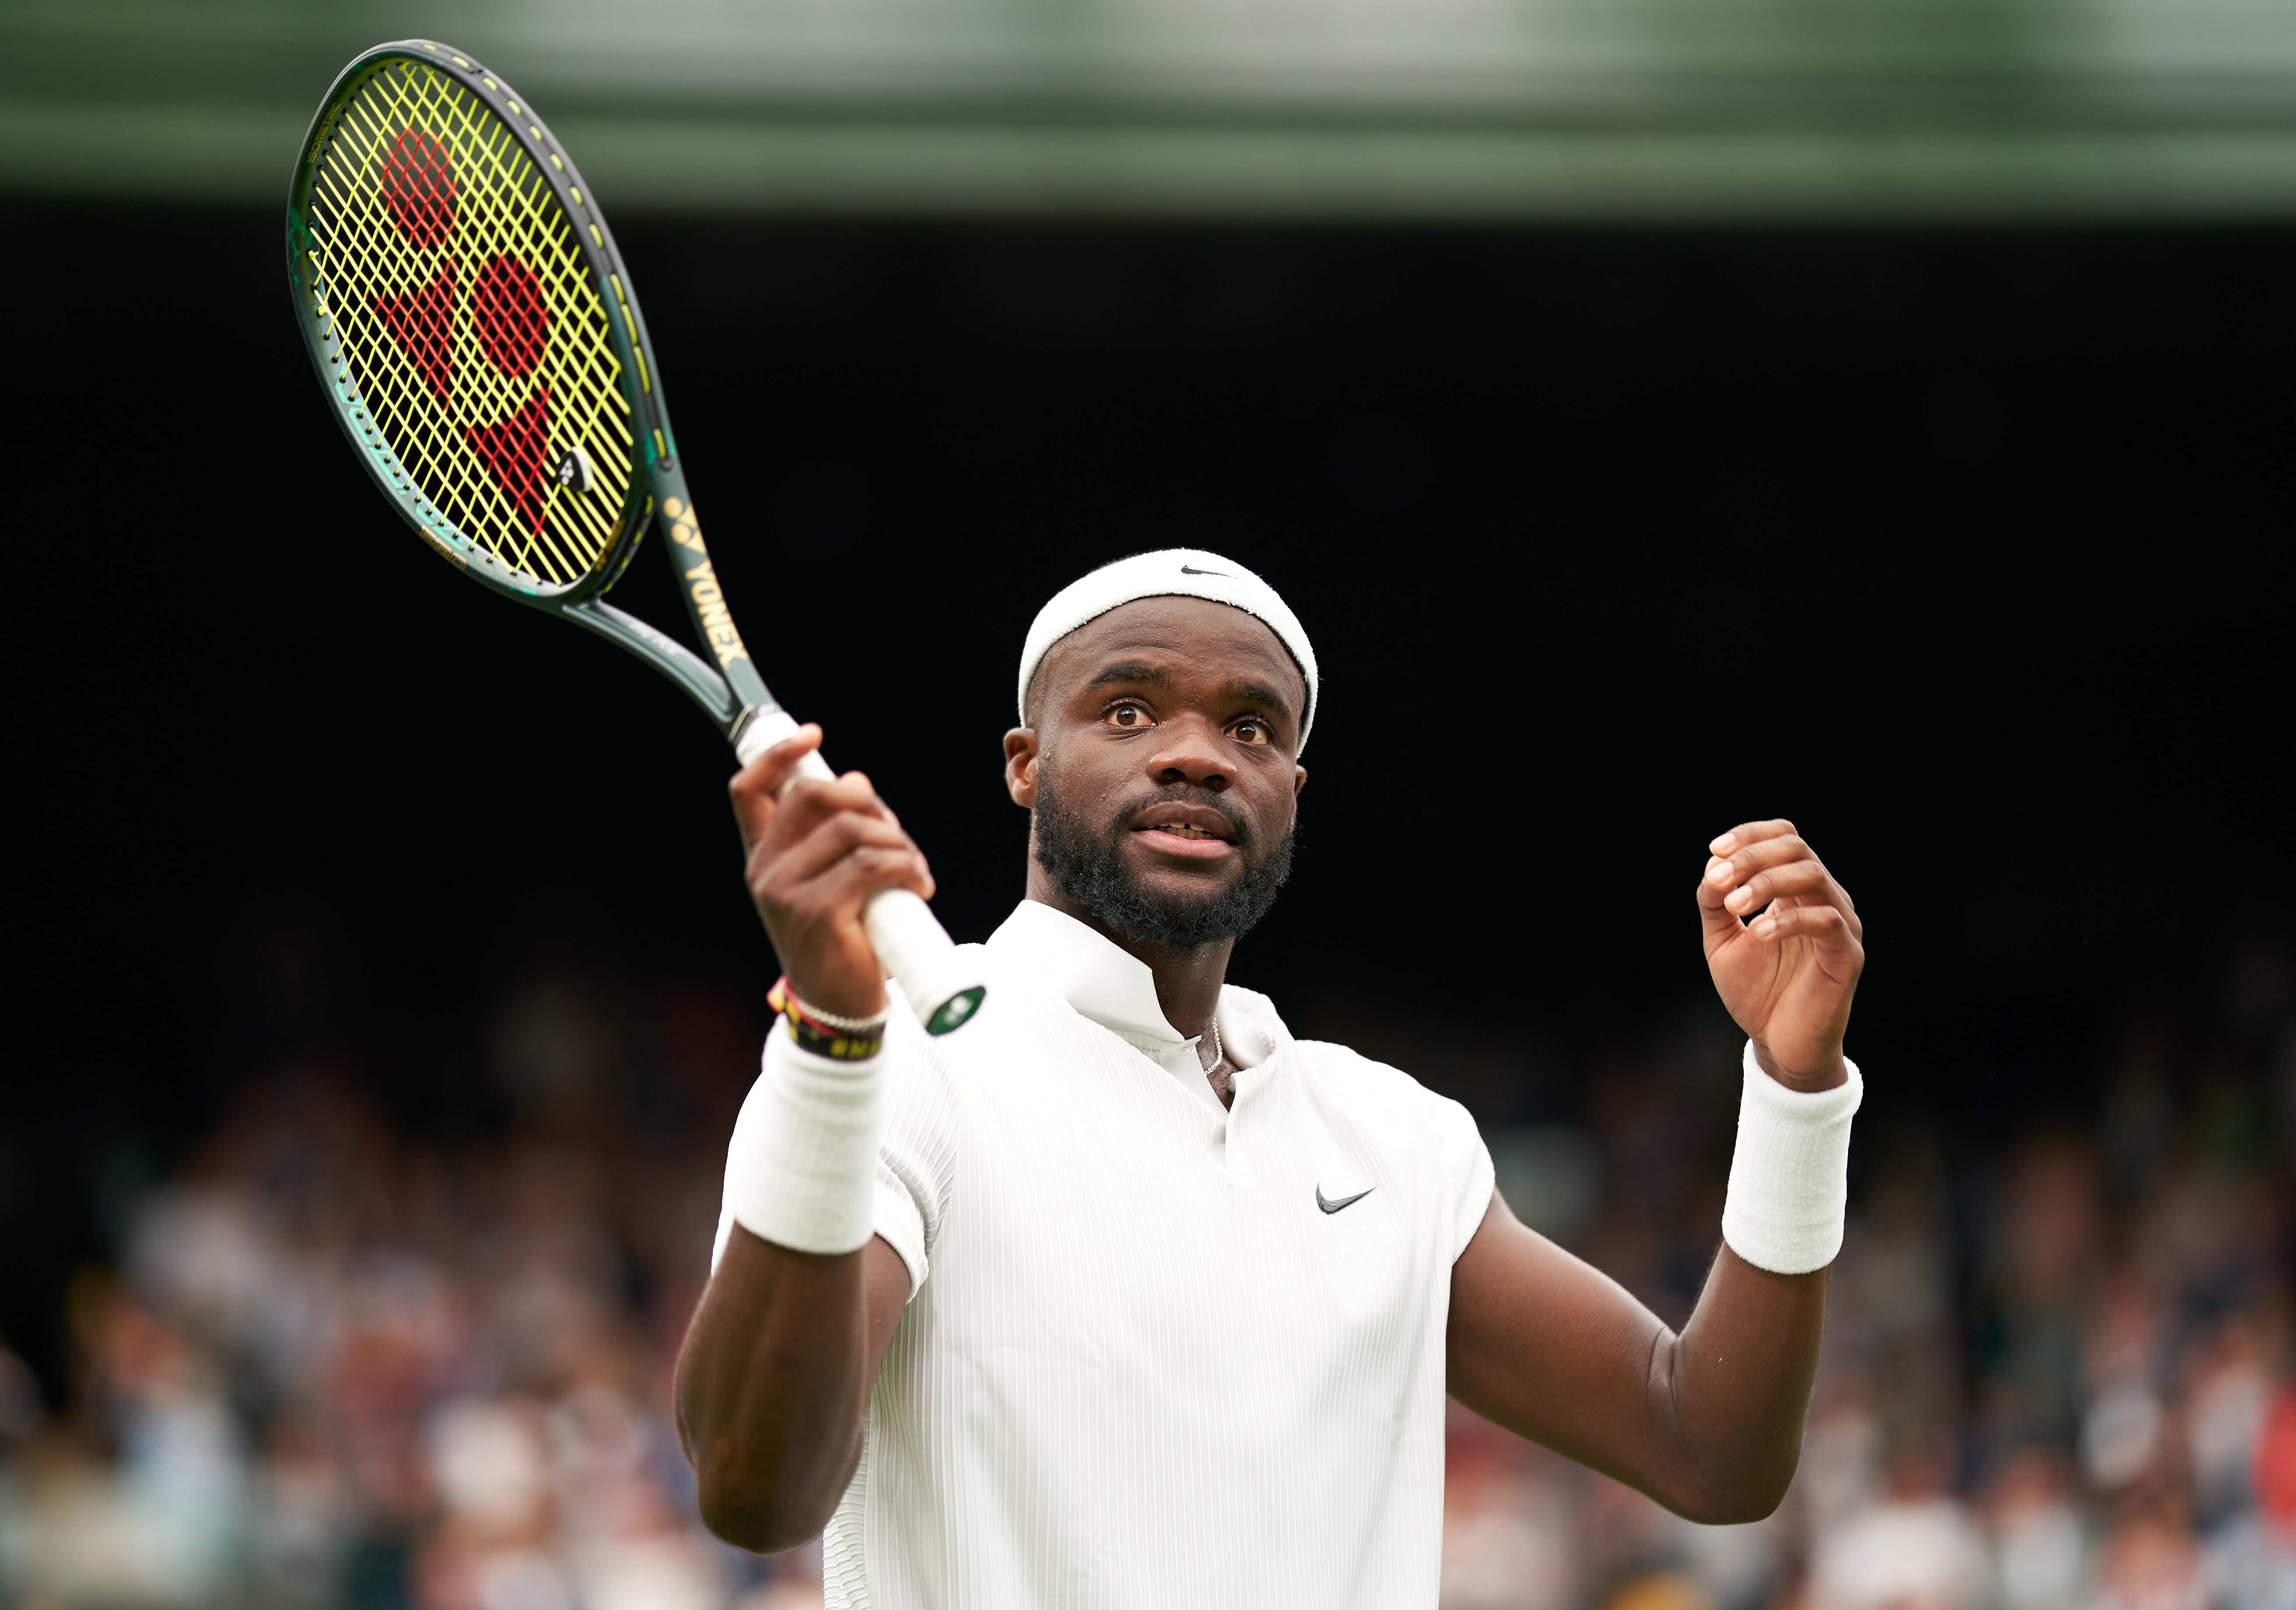 Nine Americans reach the third round of the singles draws at Wimbledon